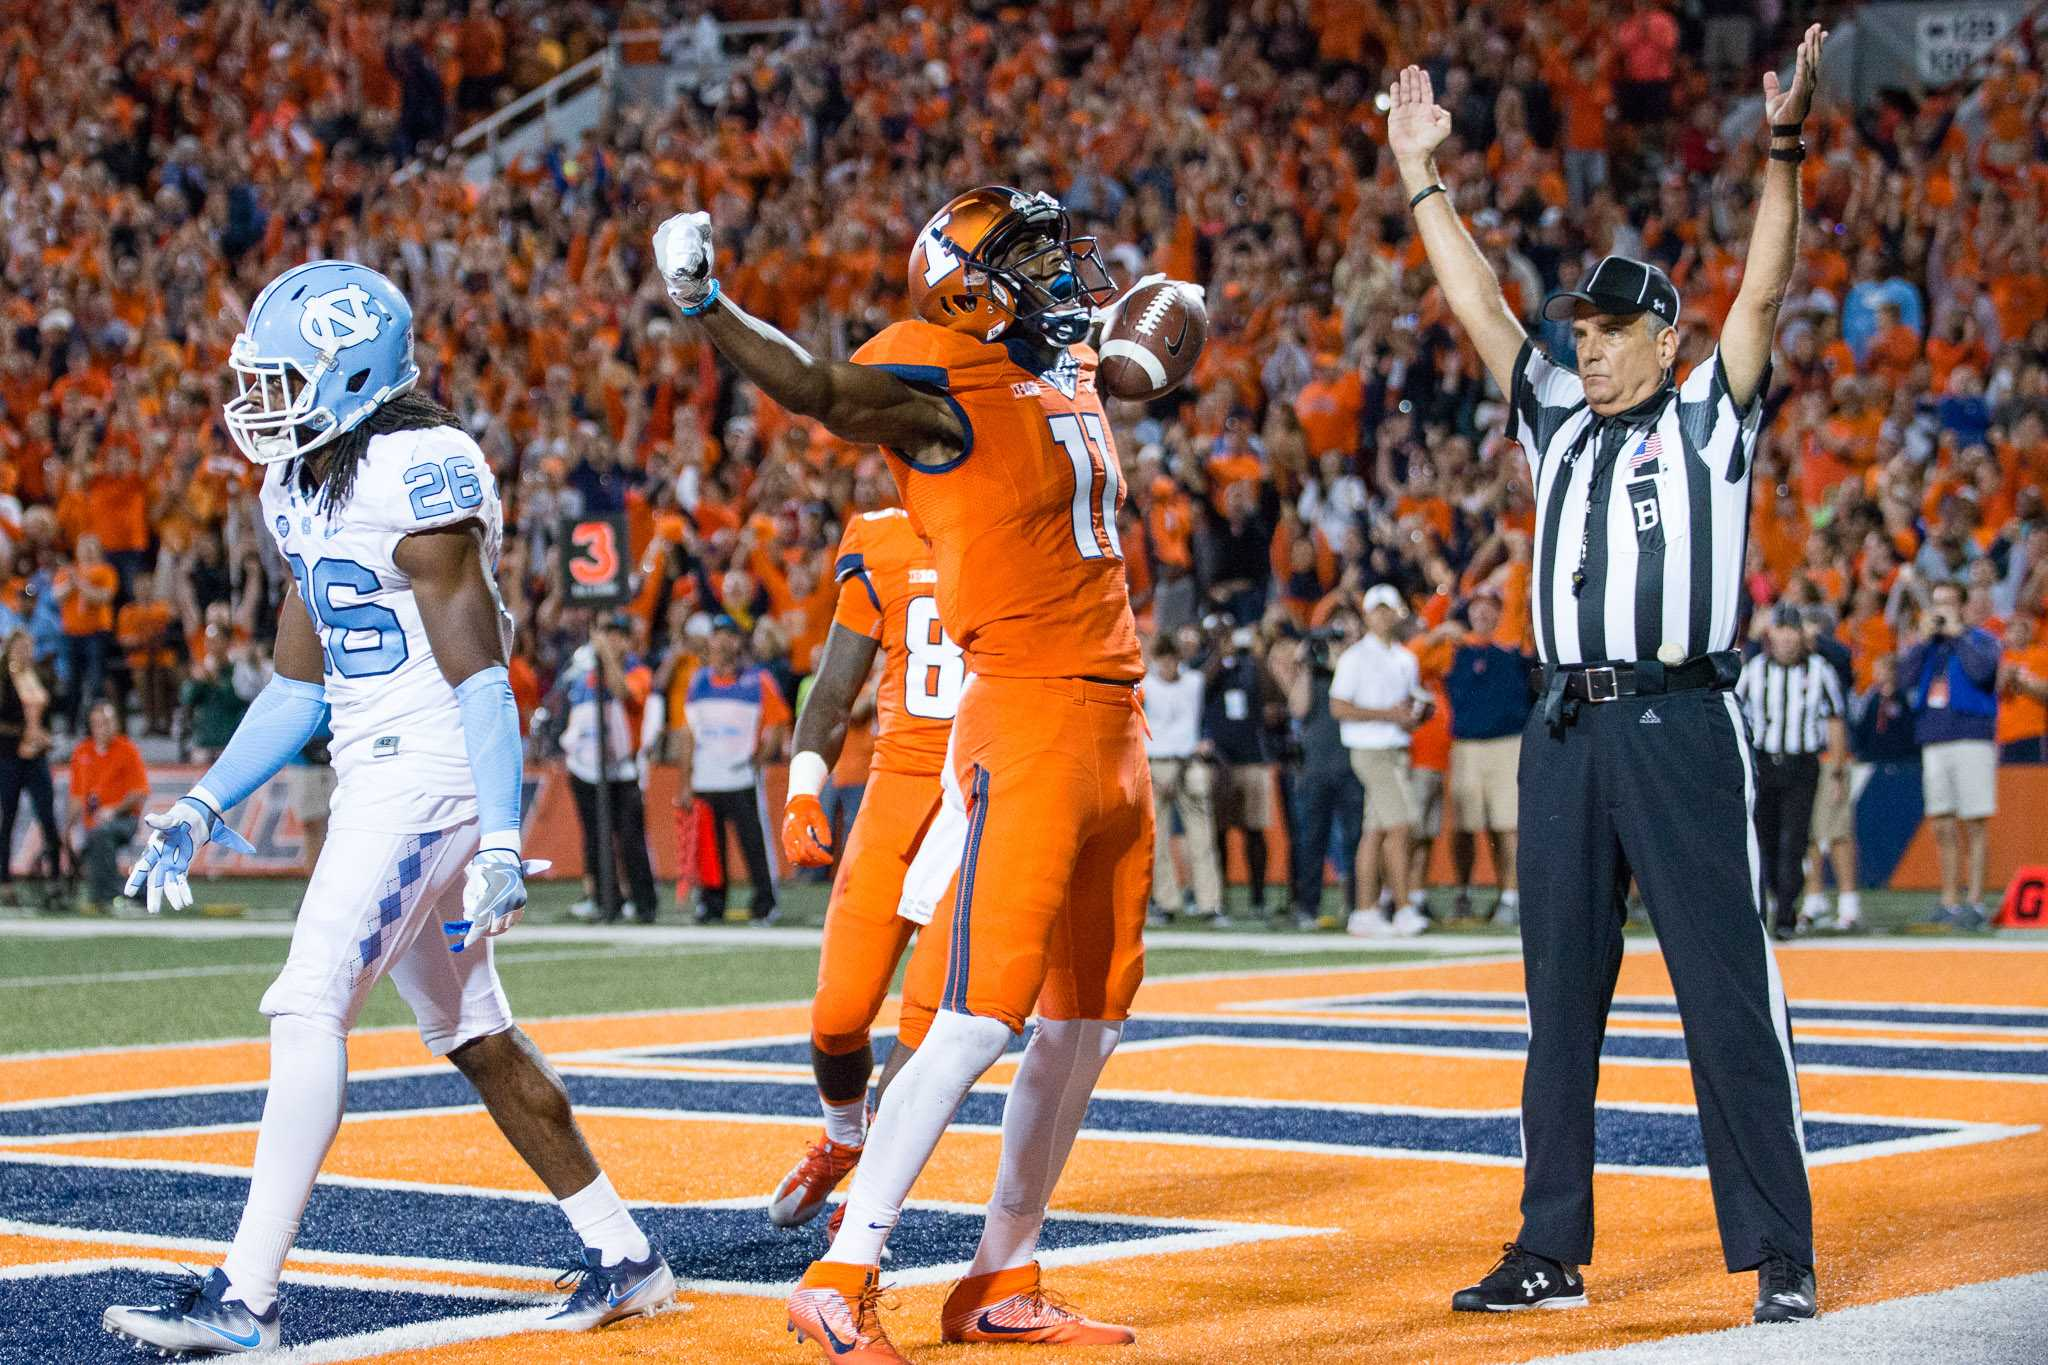 Illinois wide receiver Malik Turner(11) celebrates after scoring a touchdown during the game against North Carolina at Memorial Stadium on Saturday, September 10. The Illini loss 48-23.